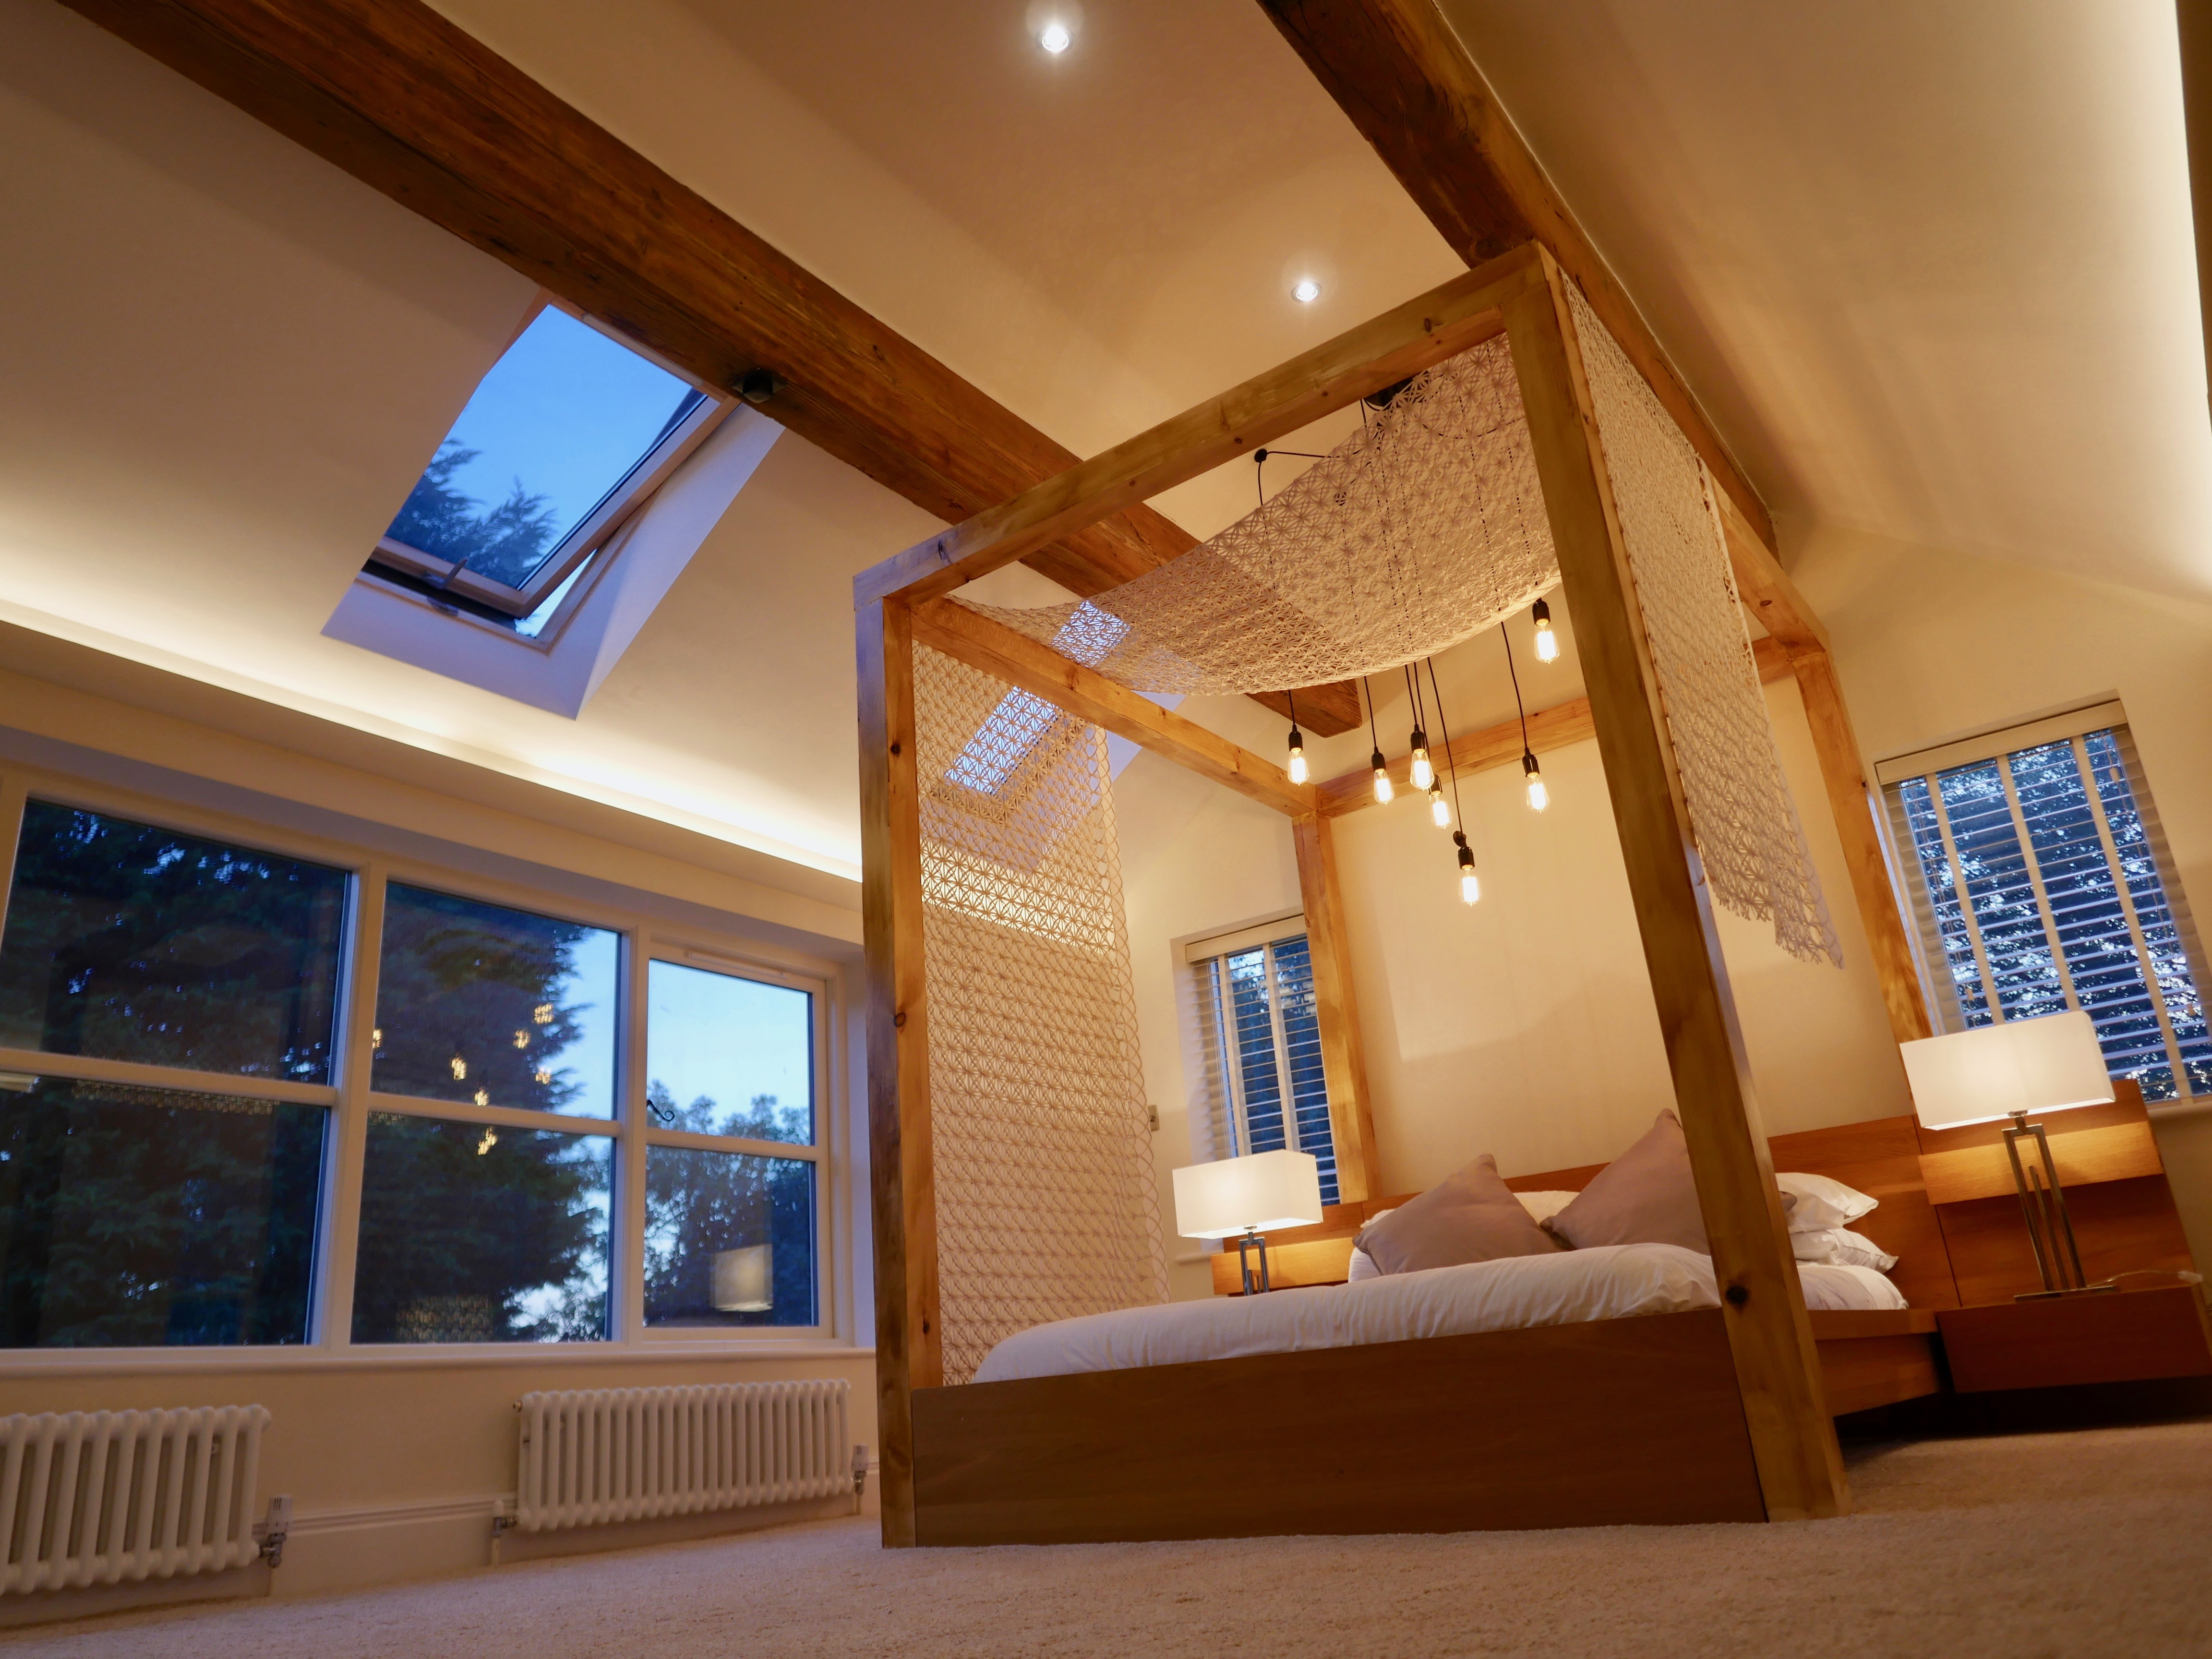 63) bed4